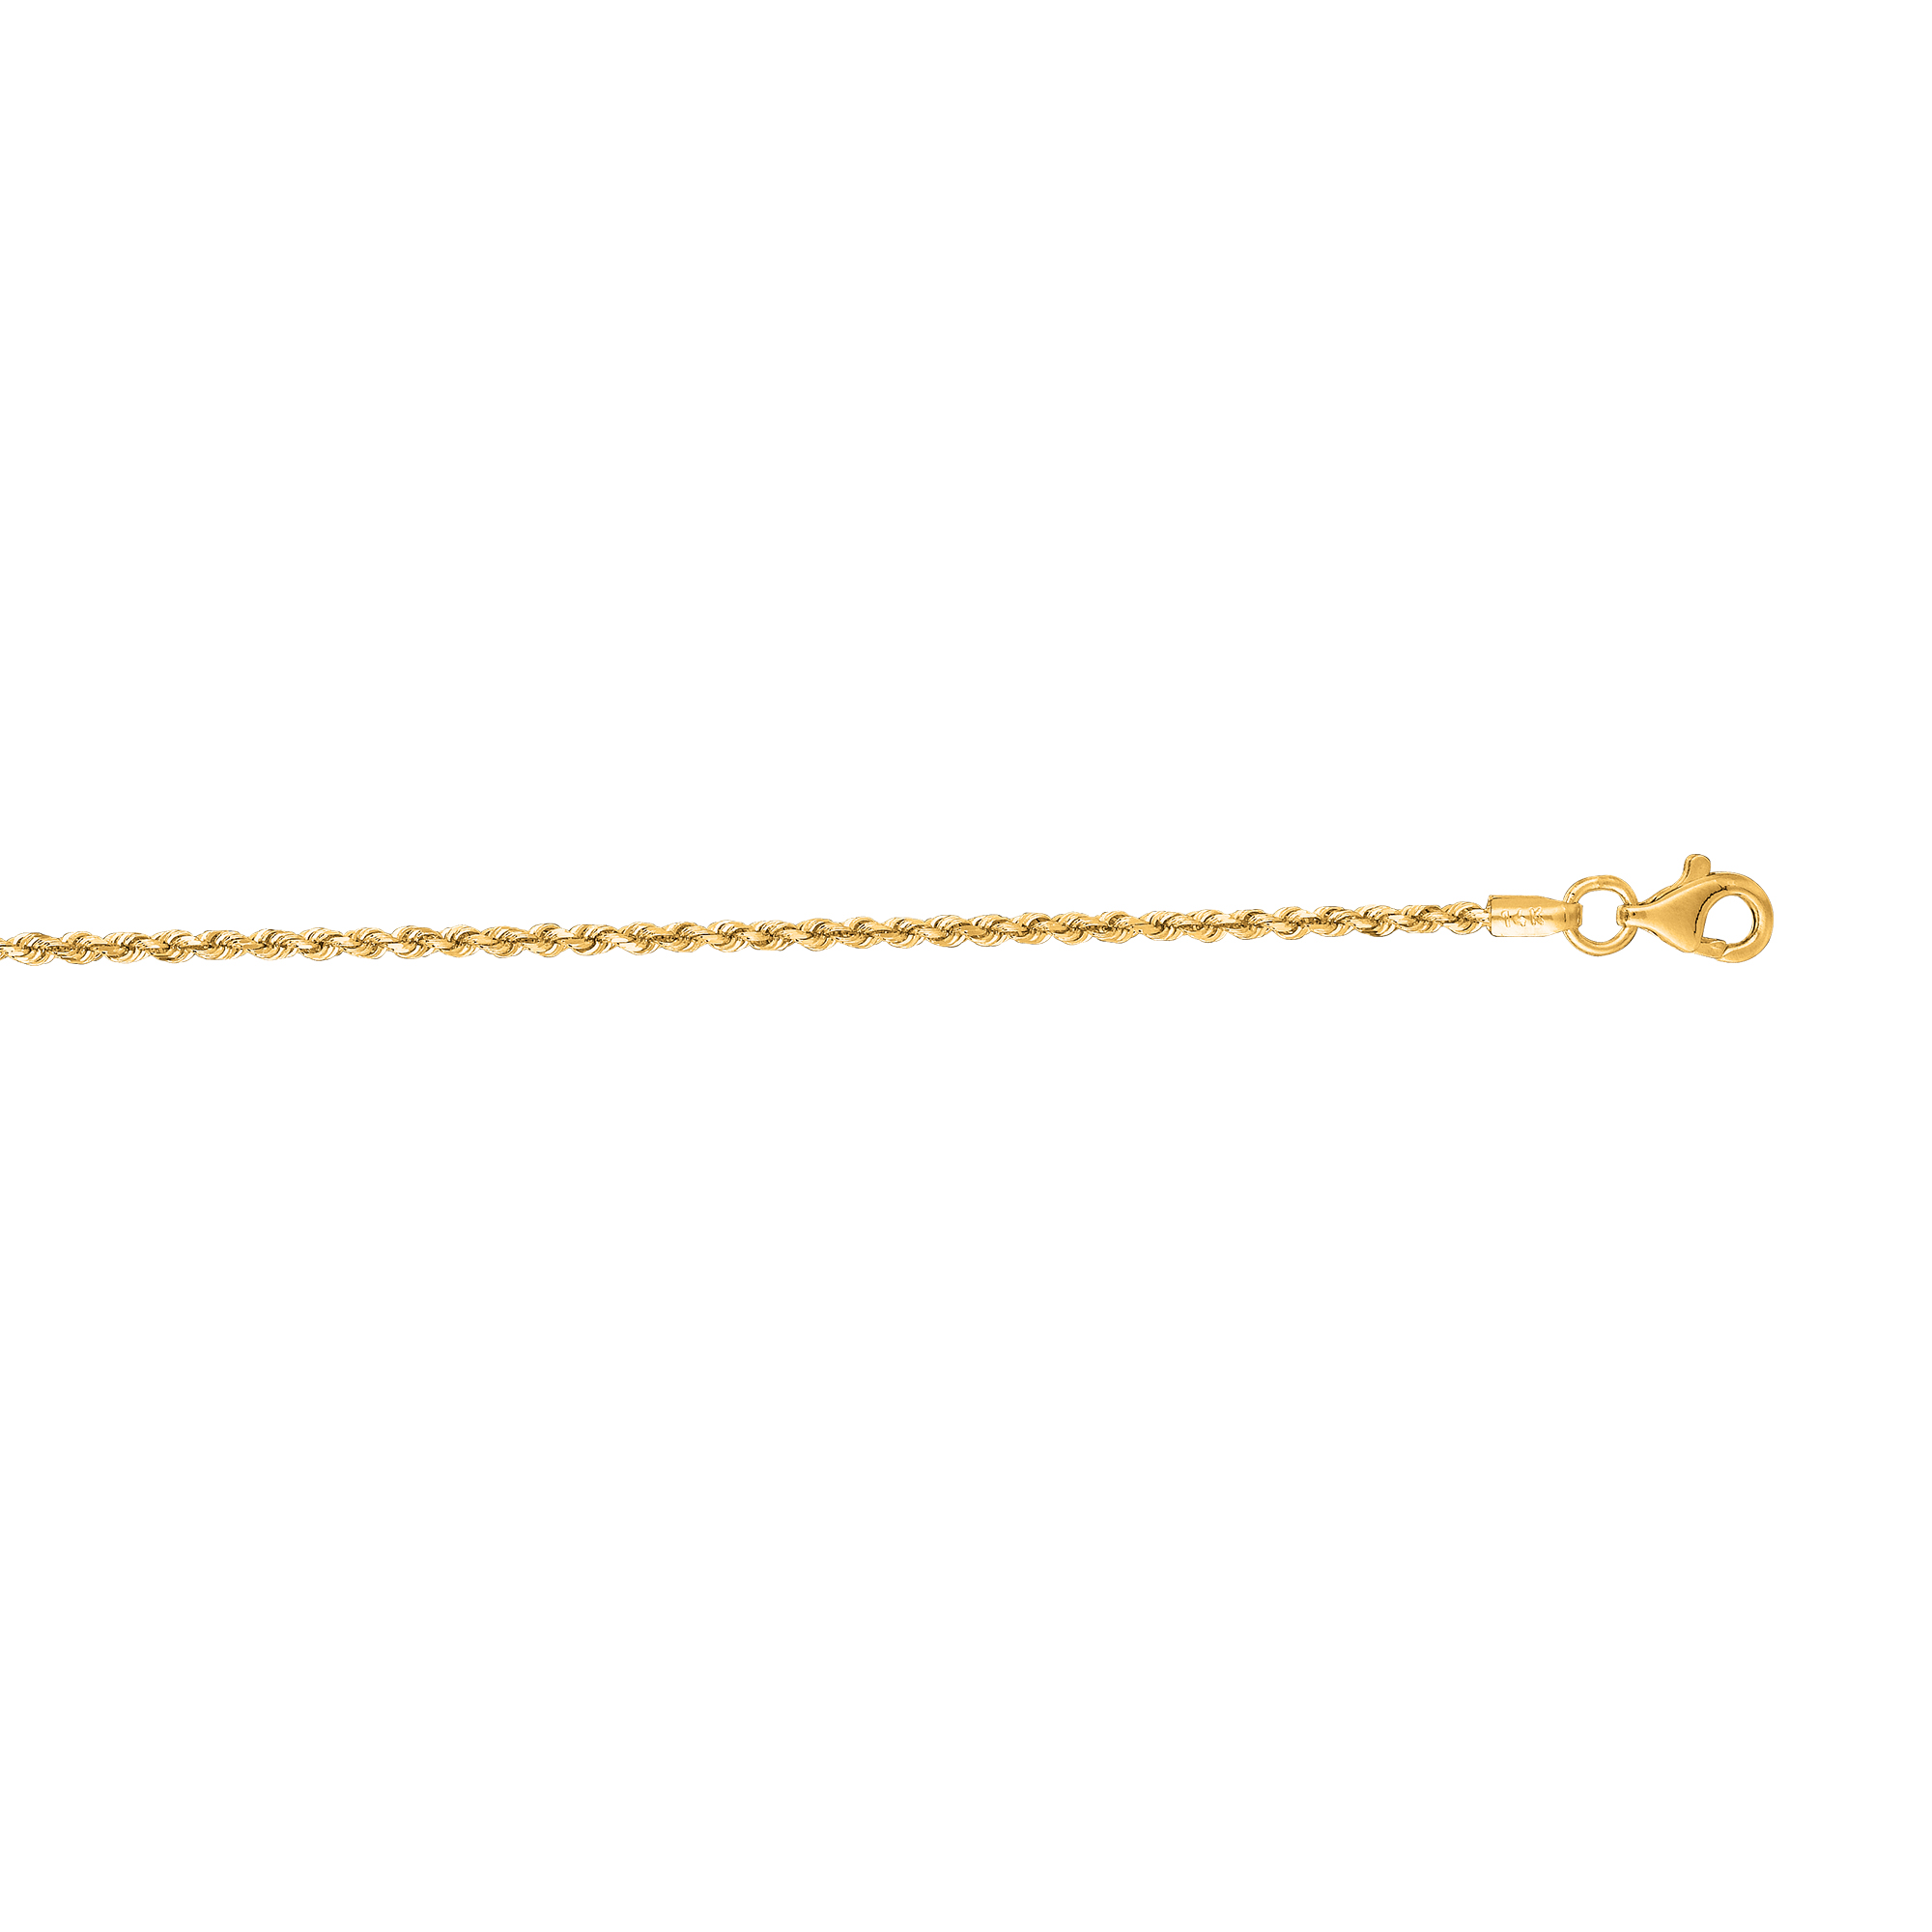 Jewelryweb 14k Yellow Gold D/C 10 Inch X 1.5 mm Rope Chain Anklet at Sears.com